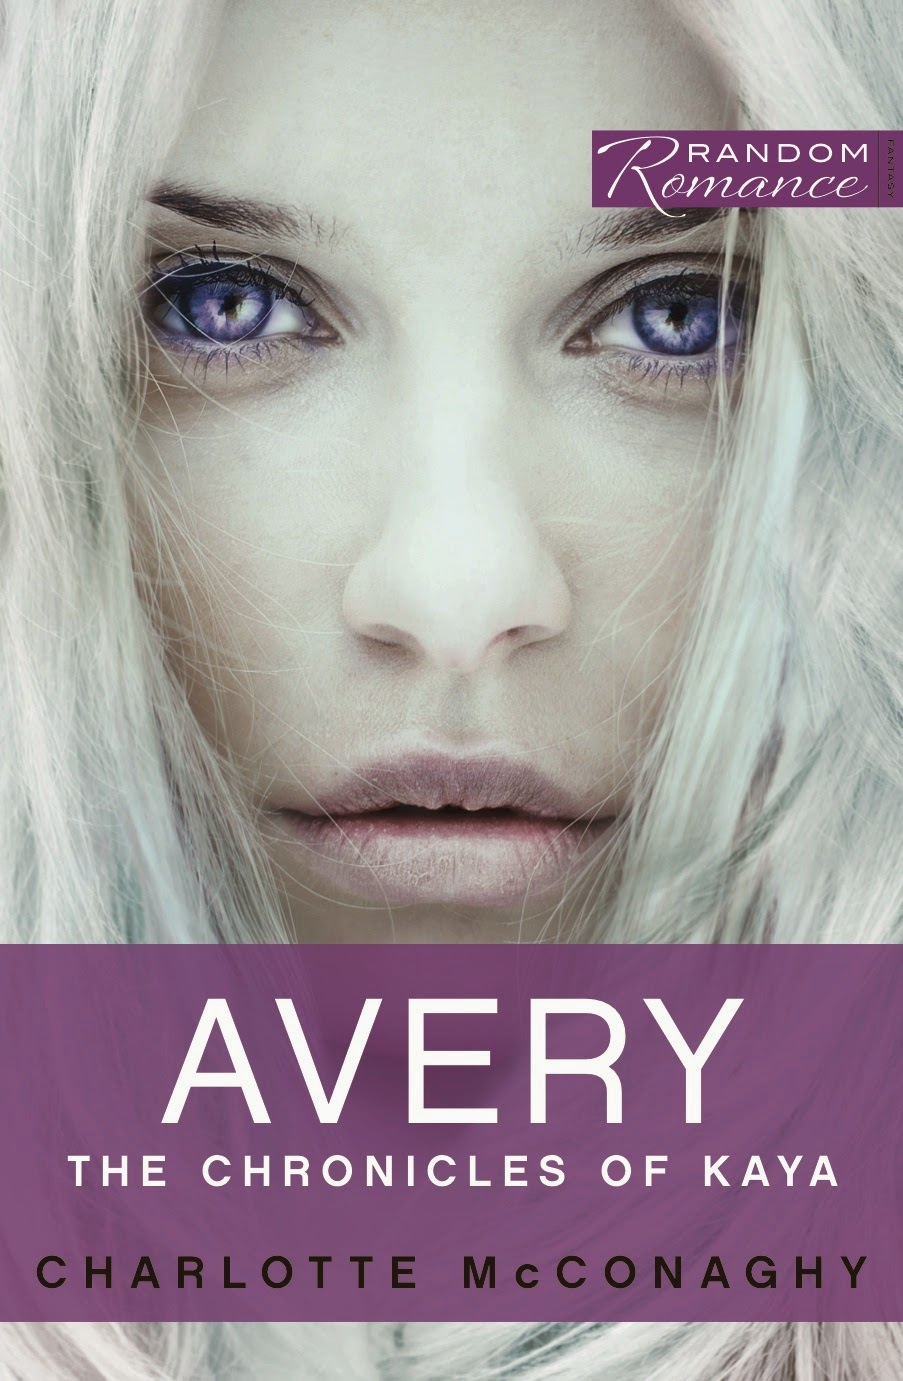 https://www.goodreads.com/book/show/18240196-avery